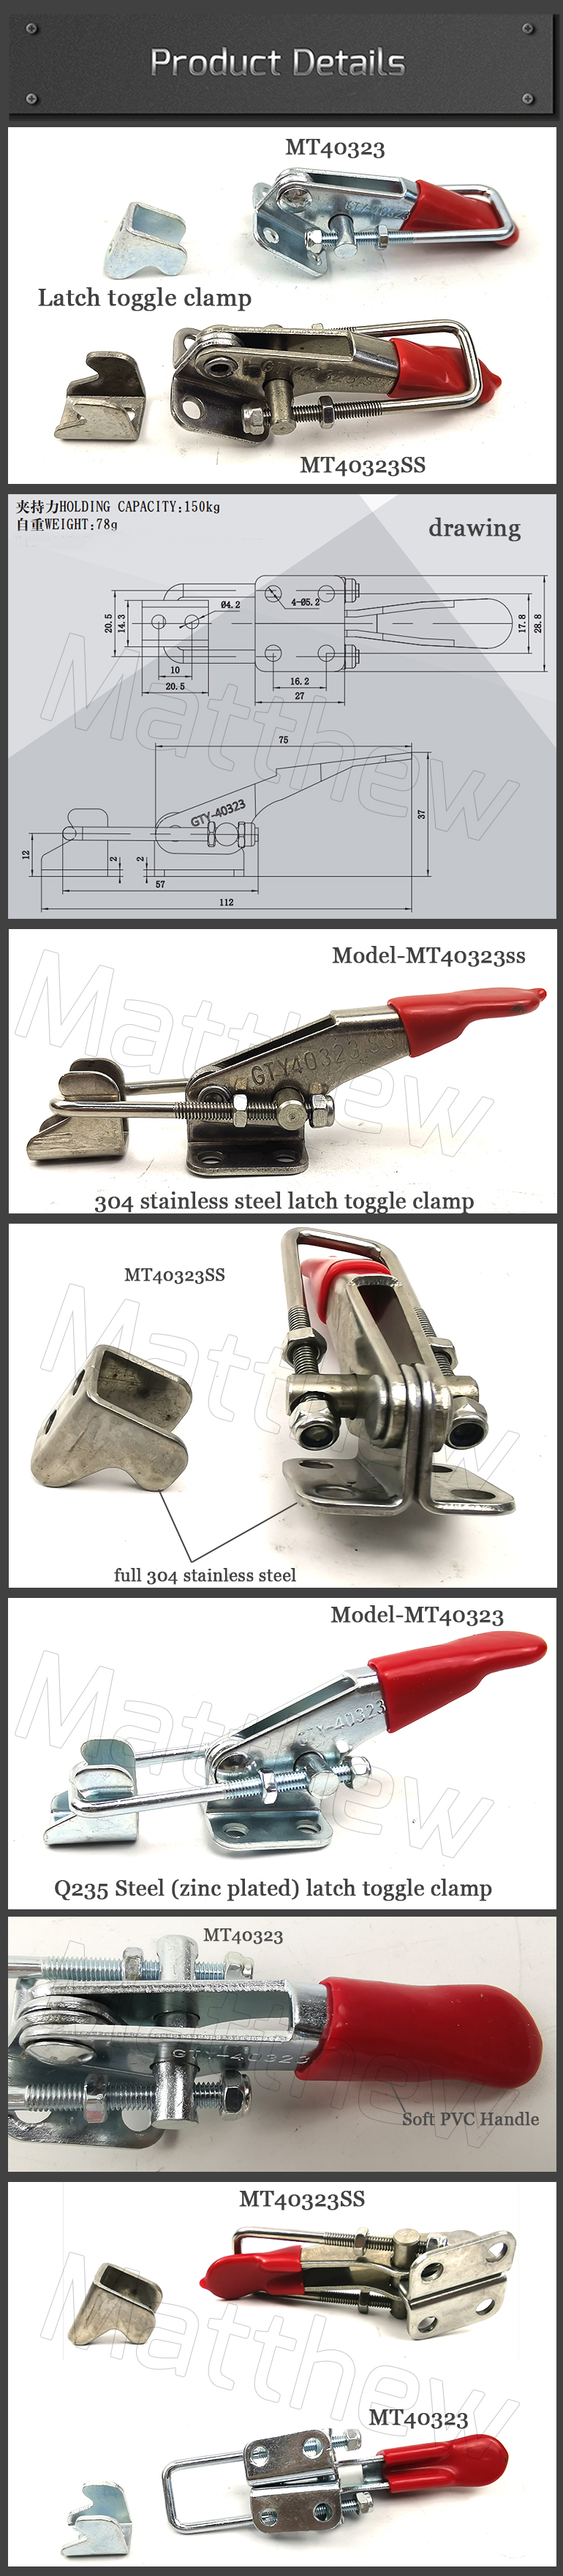 Latch Toggle Clamp U-Bolt Adjustable for quick Locking